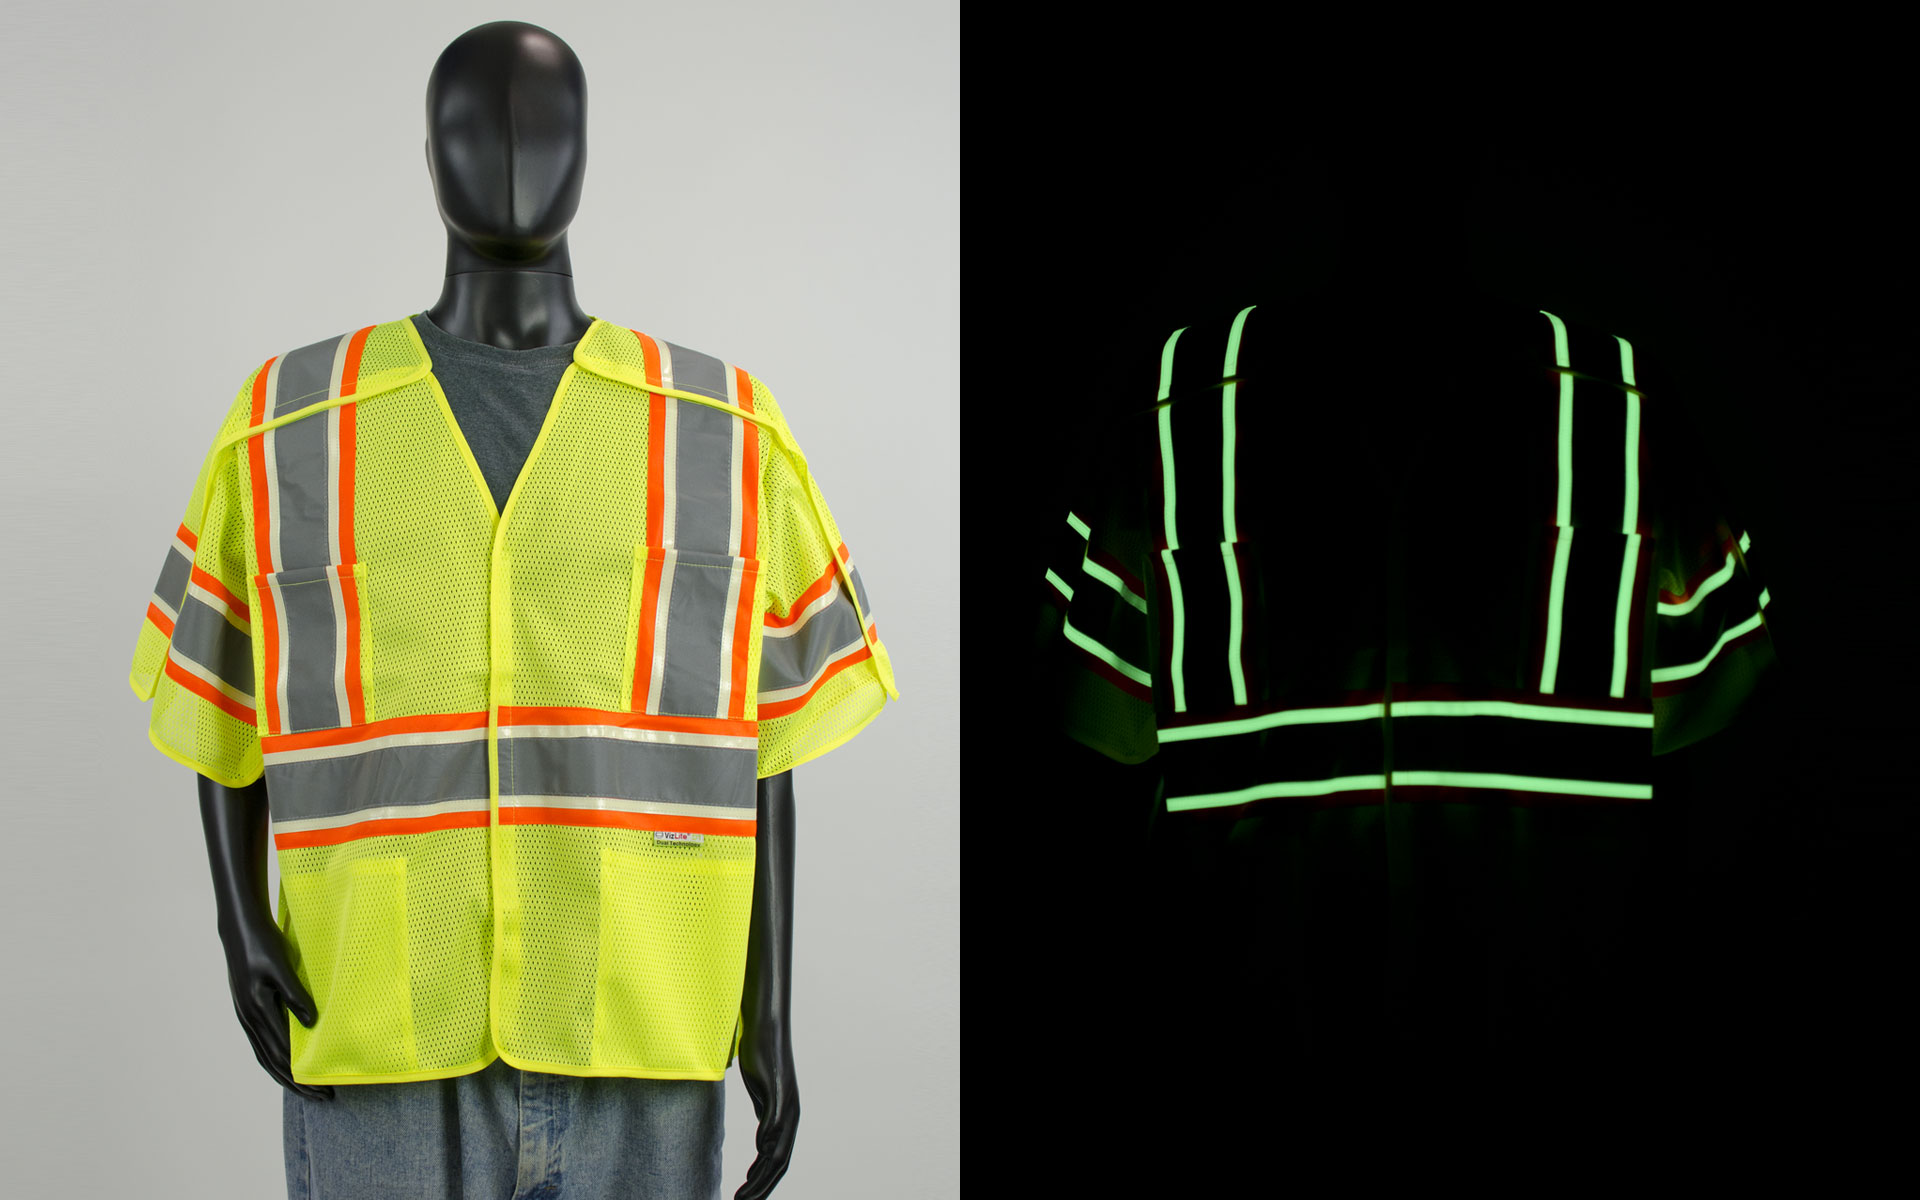 Viz Reflectives North America Work Wear presents Vizlite DT